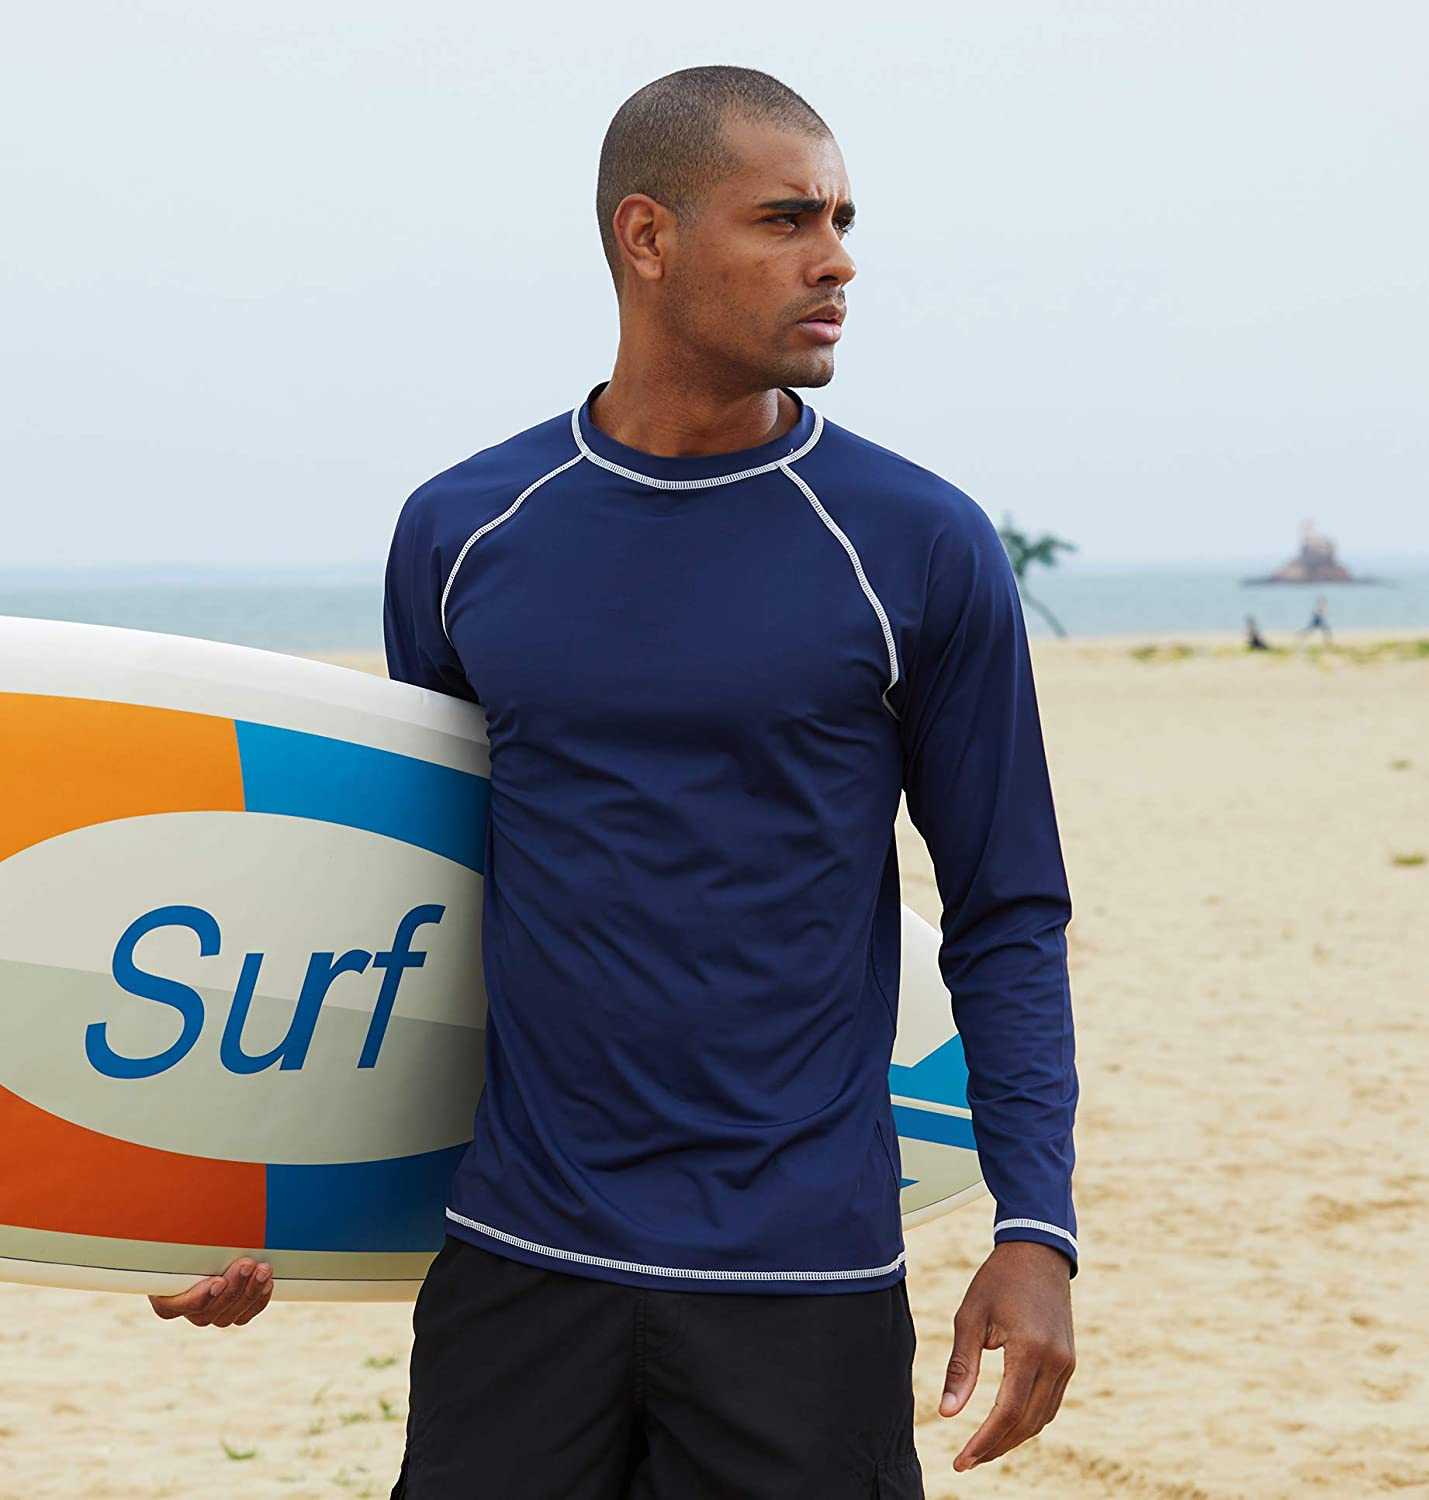 Shirts Diving Wetsuits Swimsuit MILANKERR Mens Rash Guards Long Sleeves Quick Dry Swimming Rash Surfing UV Sun Protection 50